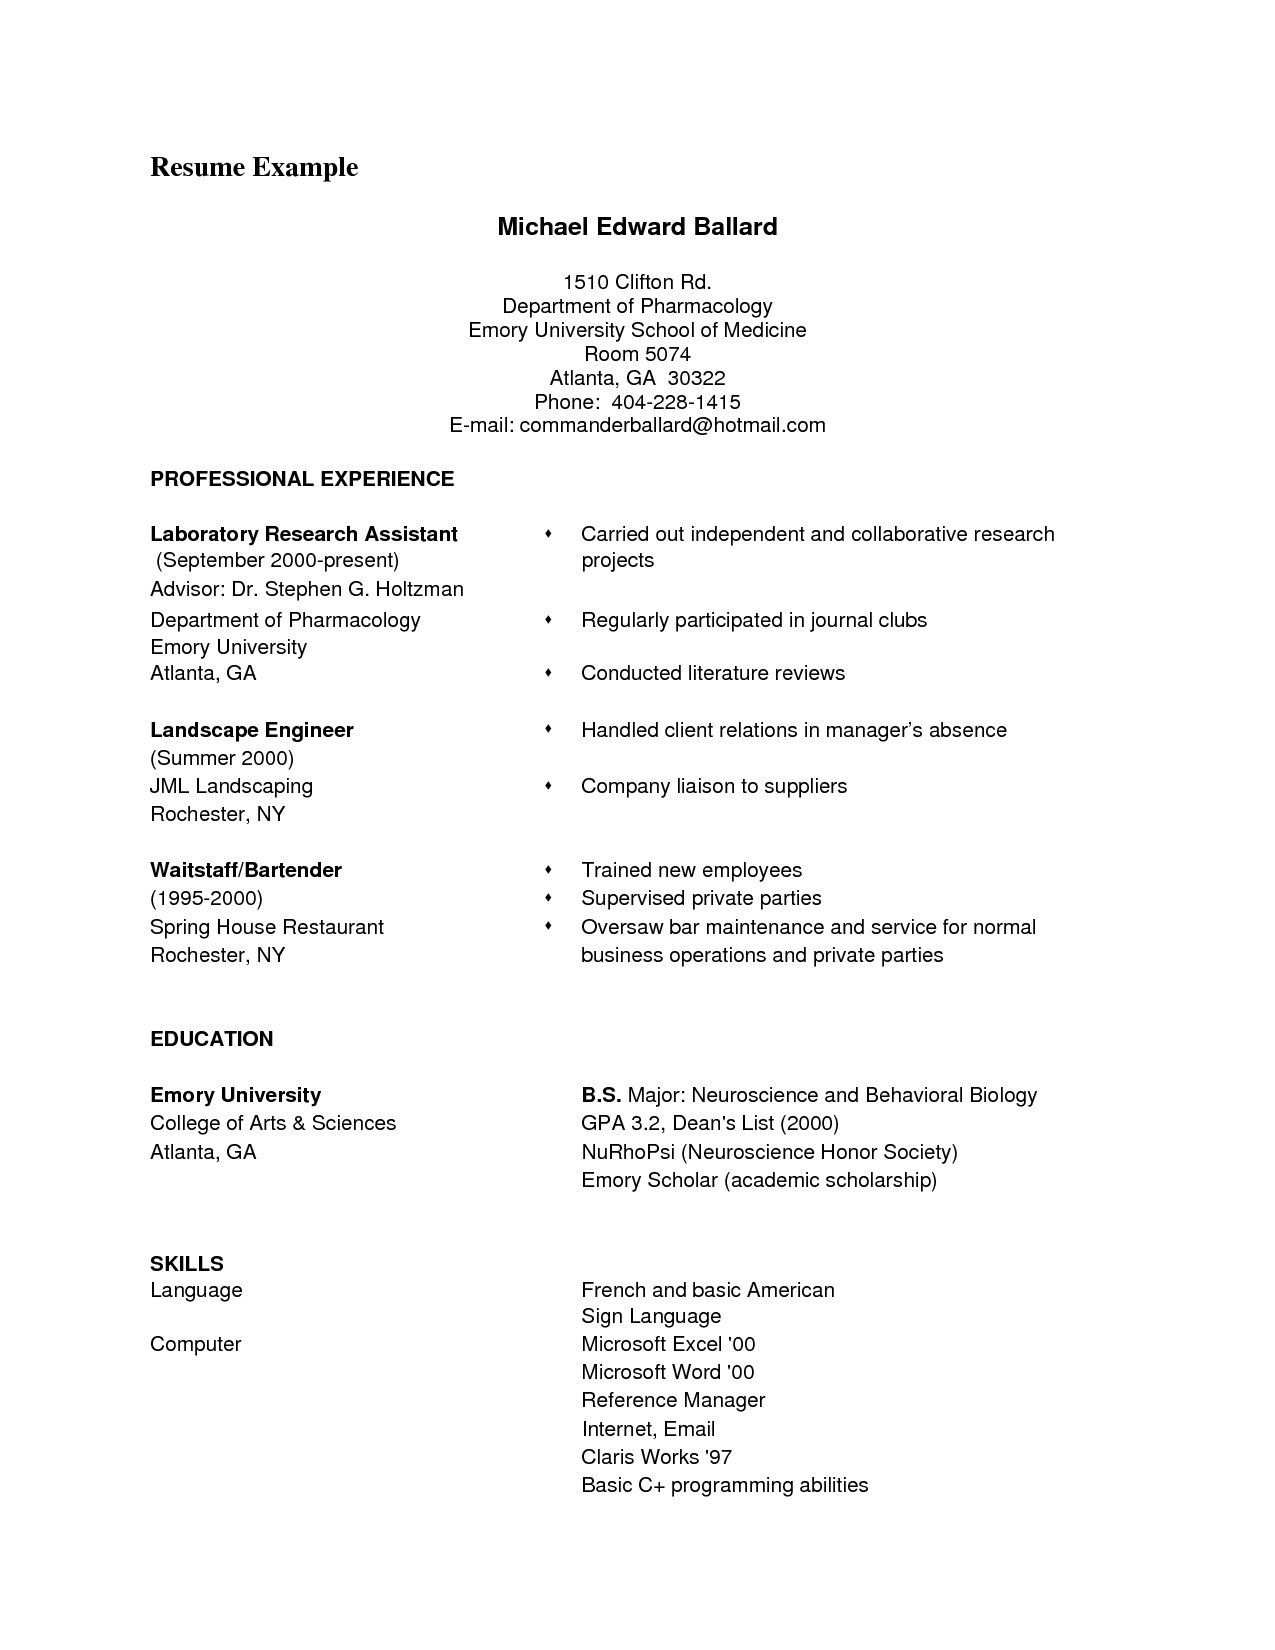 Arts Resume Template - Classic Resume Templates ¢Ë†Å¡ Powerpoint Templates for Biology New